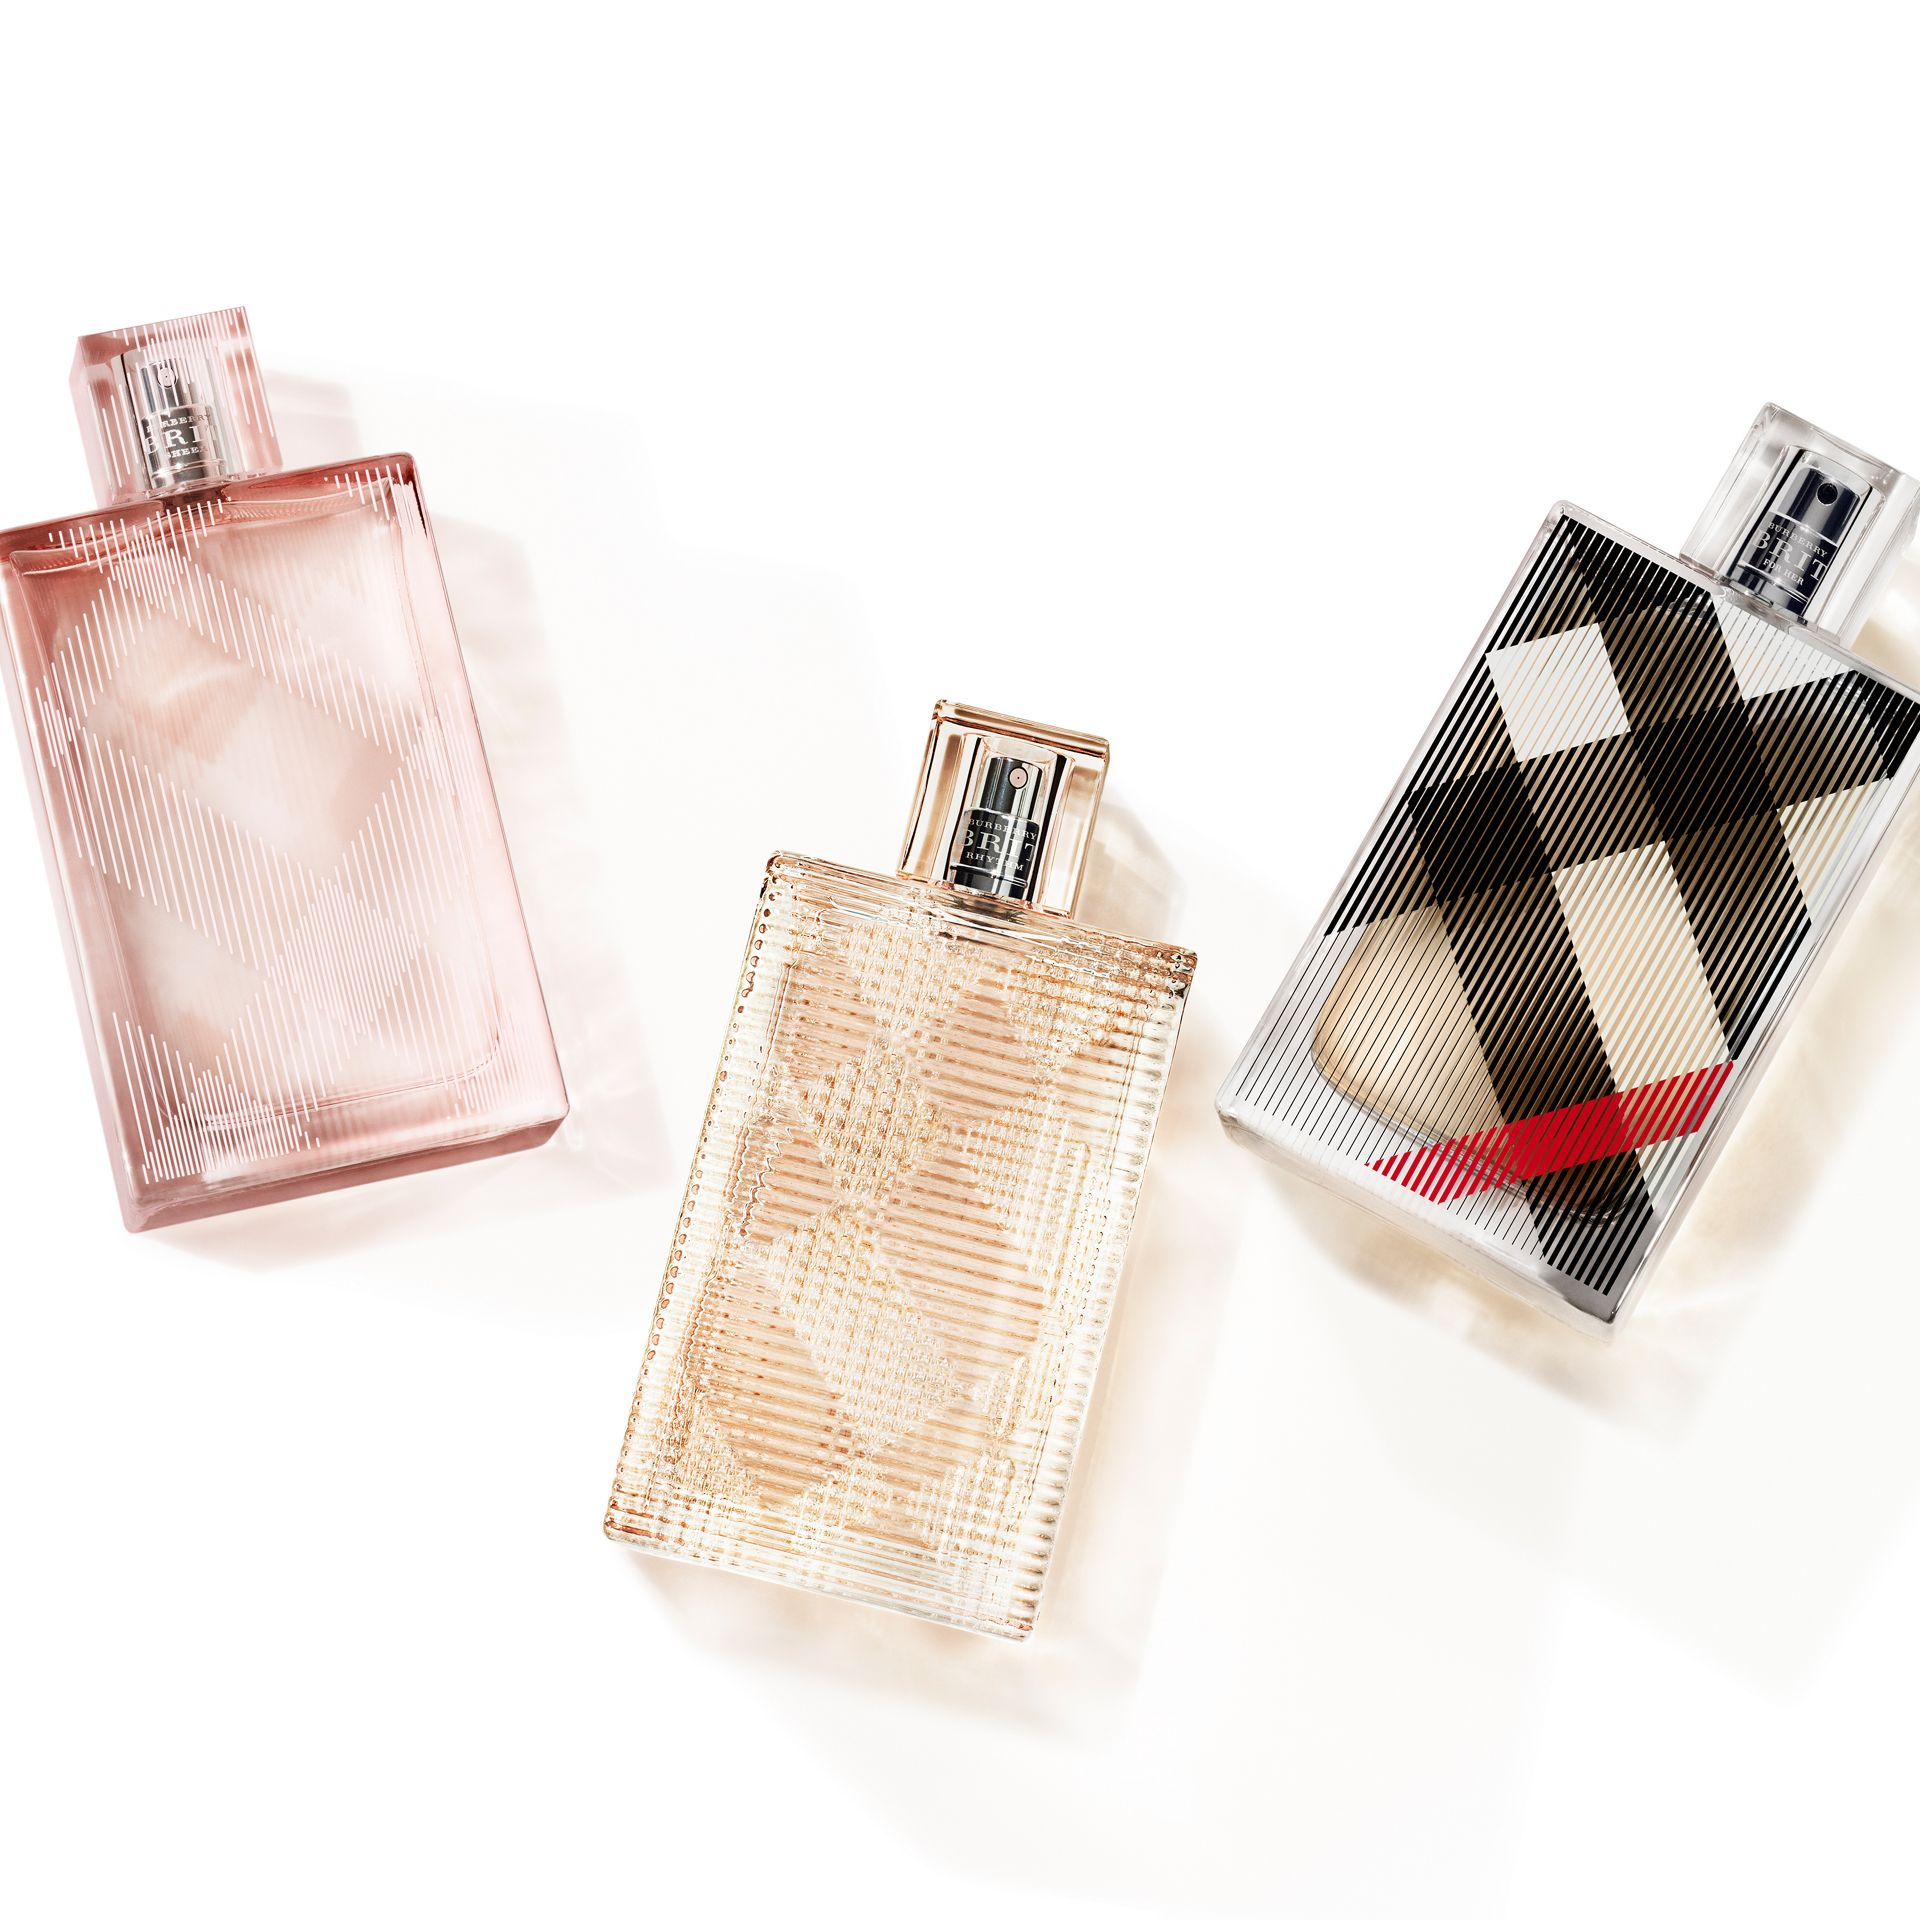 Burberry Brit For Her Eau de Parfum 30ml - gallery image 3